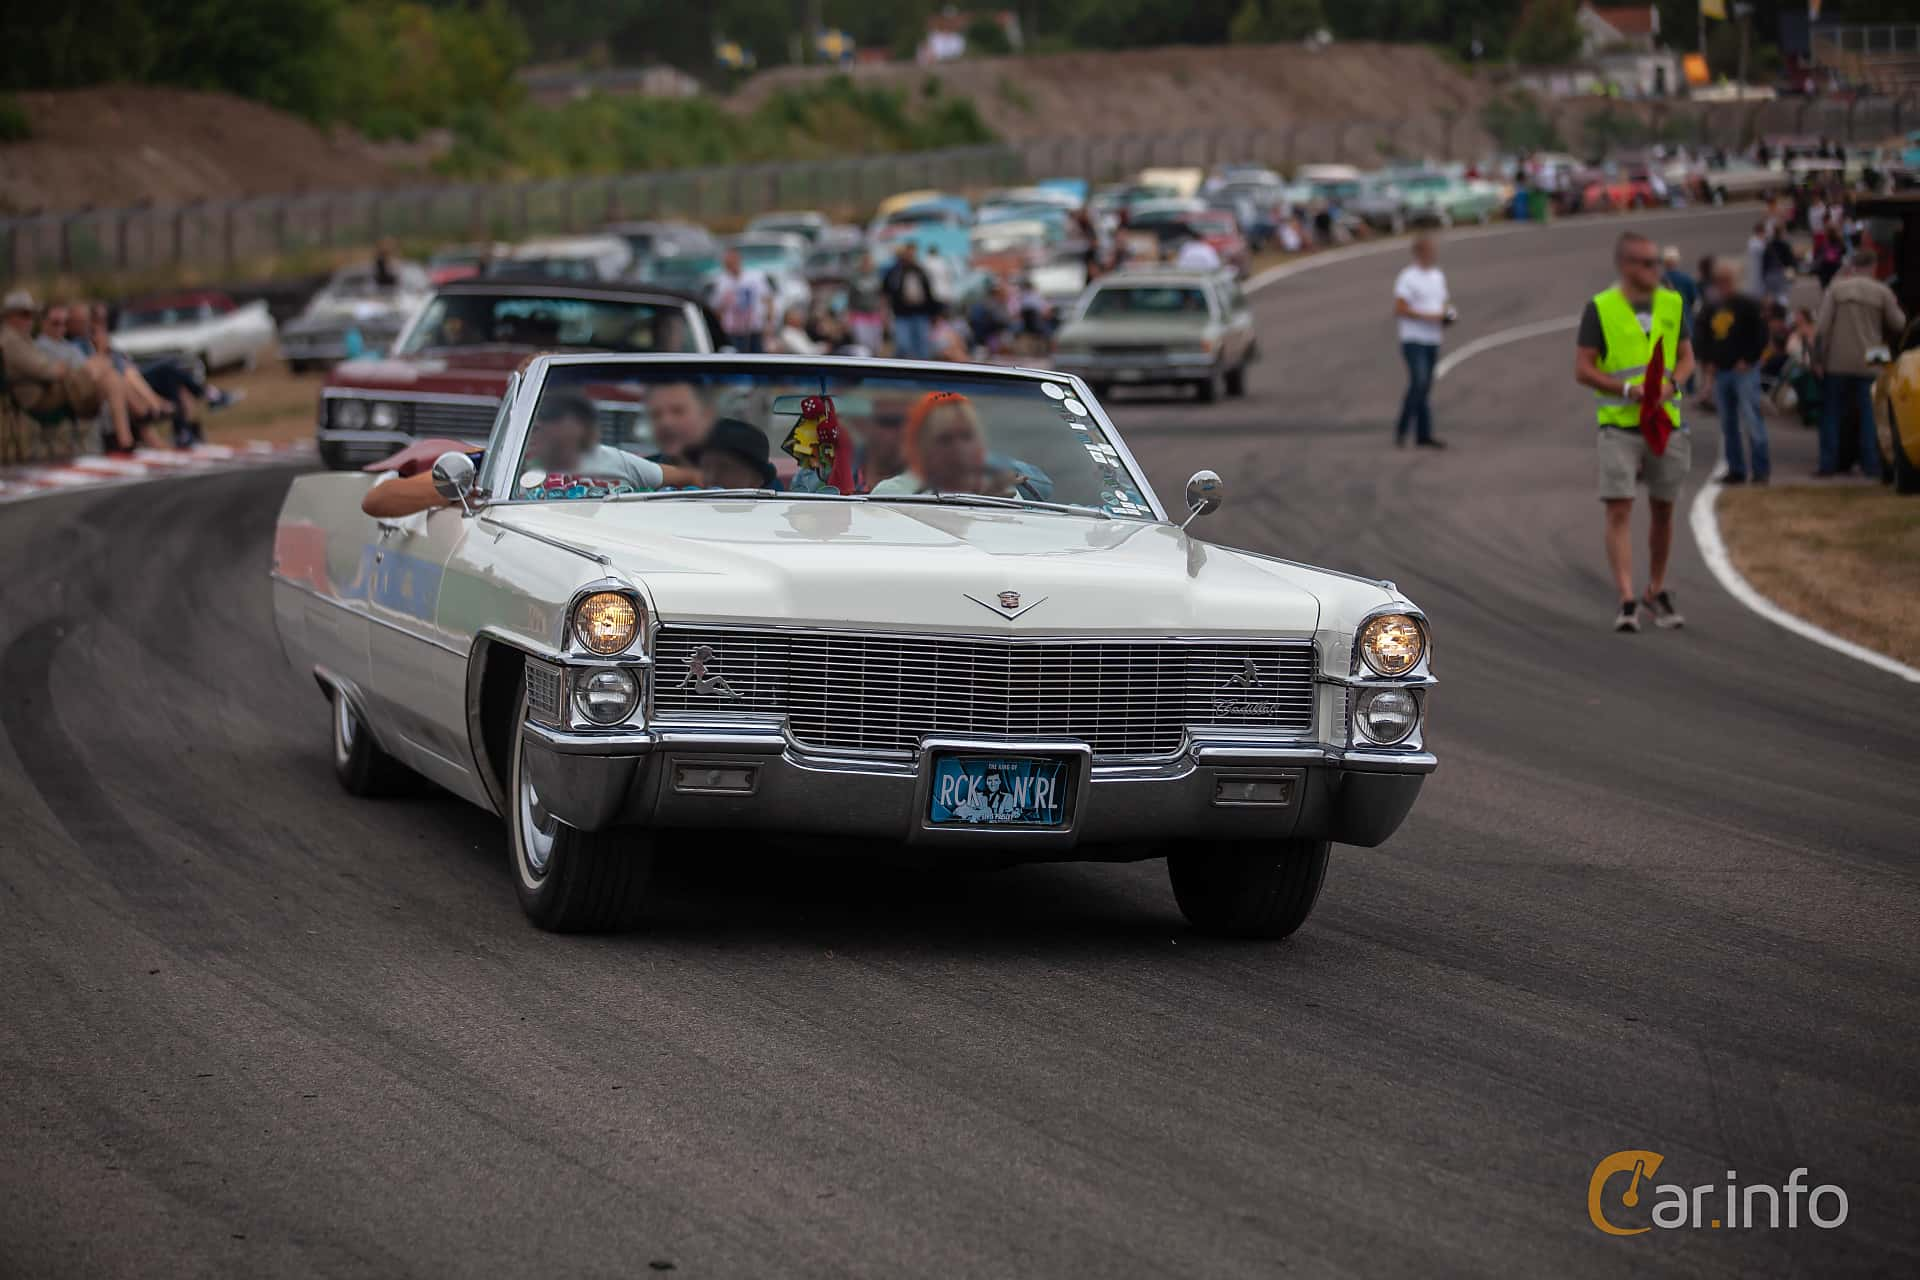 Cadillac De Ville Convertible 7.0 V8 OHV Hydra-Matic, 345hp, 1965 at Wheels & Wings 2018